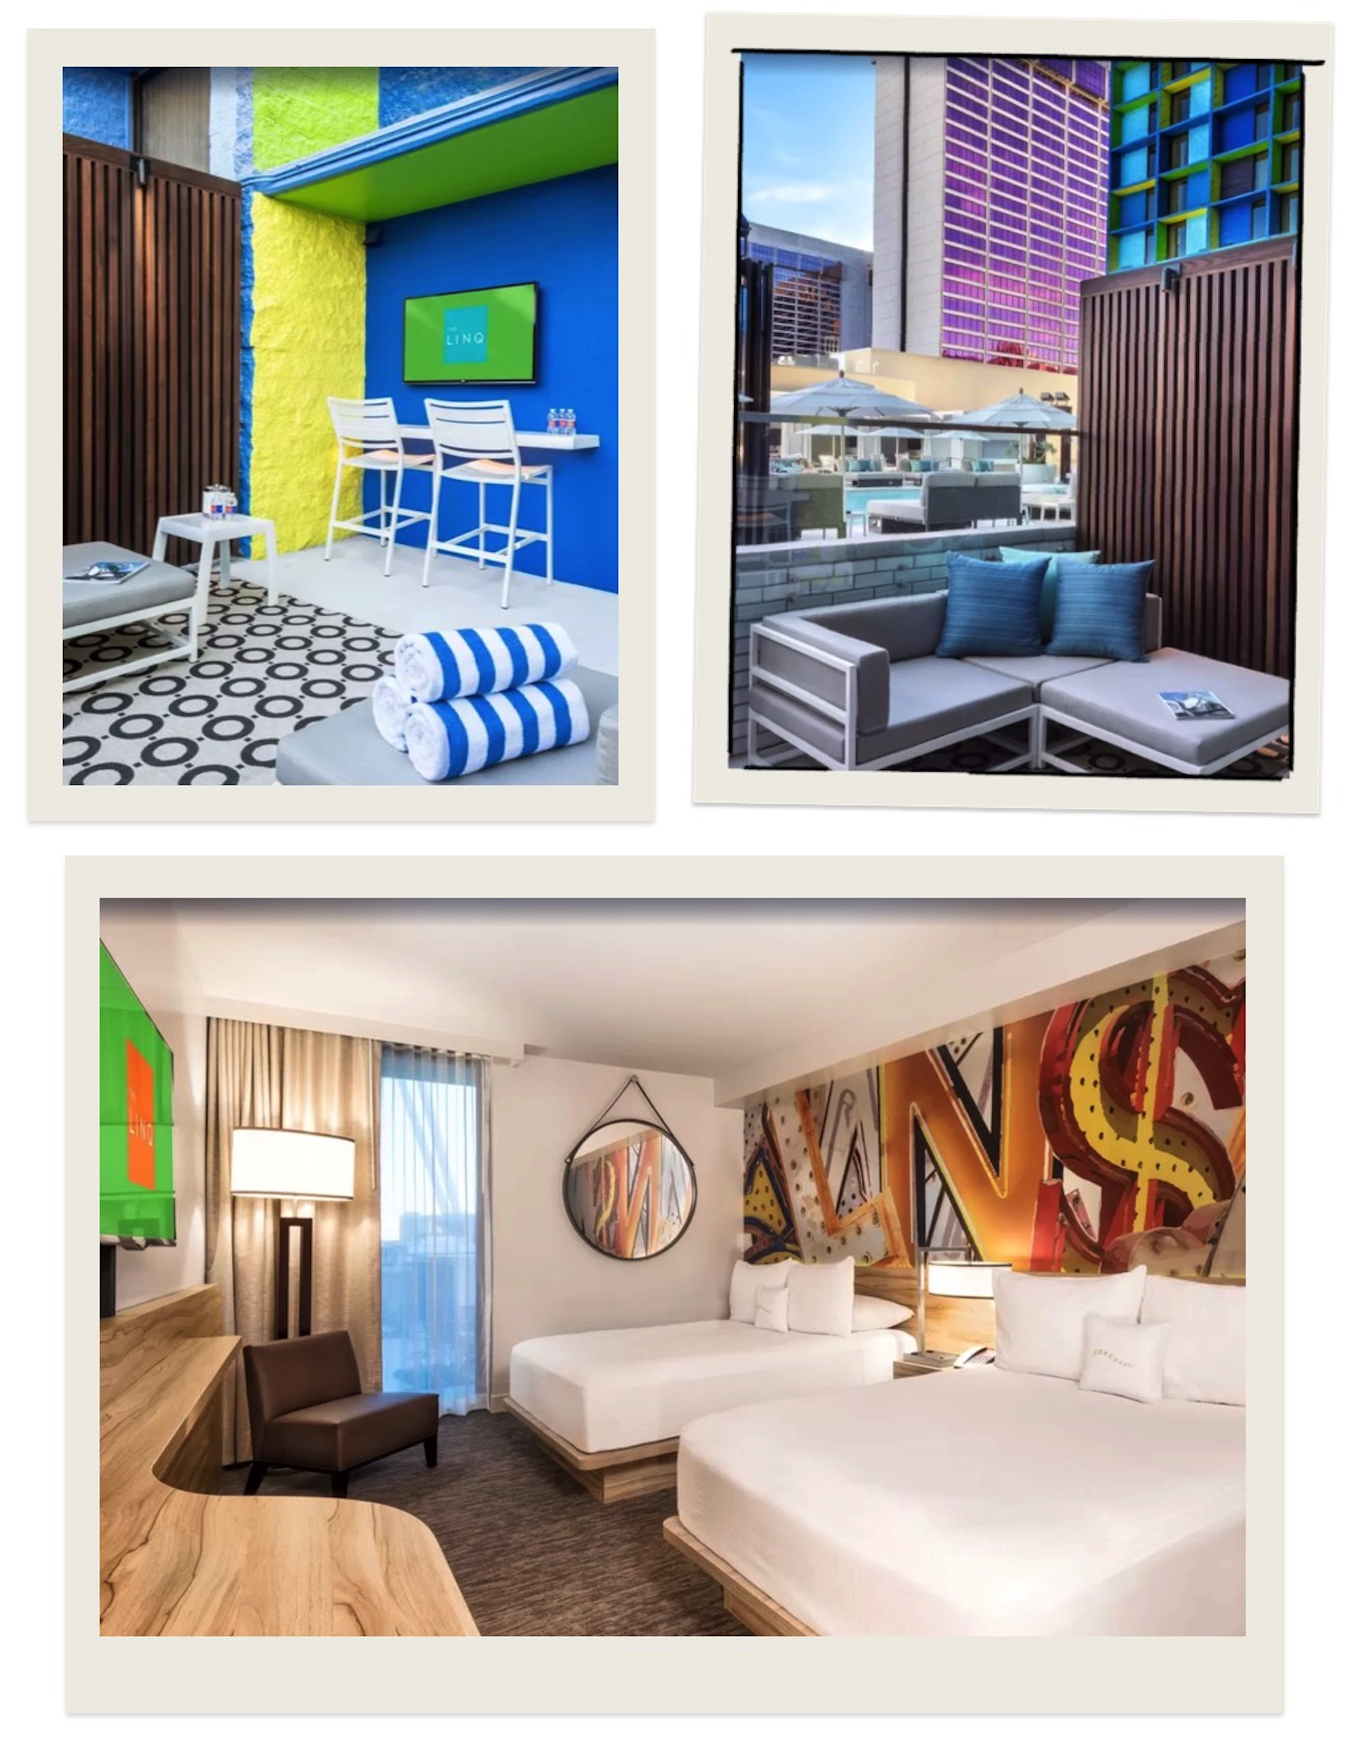 places to stay in las vegas - best las vegas hotels - list of las vegas hotels - best area to stay in las vegas - list of las vegas hotels - best places to stay in vegas on the strip - where to stay in vegas first time - which vegas hotel should i stay at - the linq.png